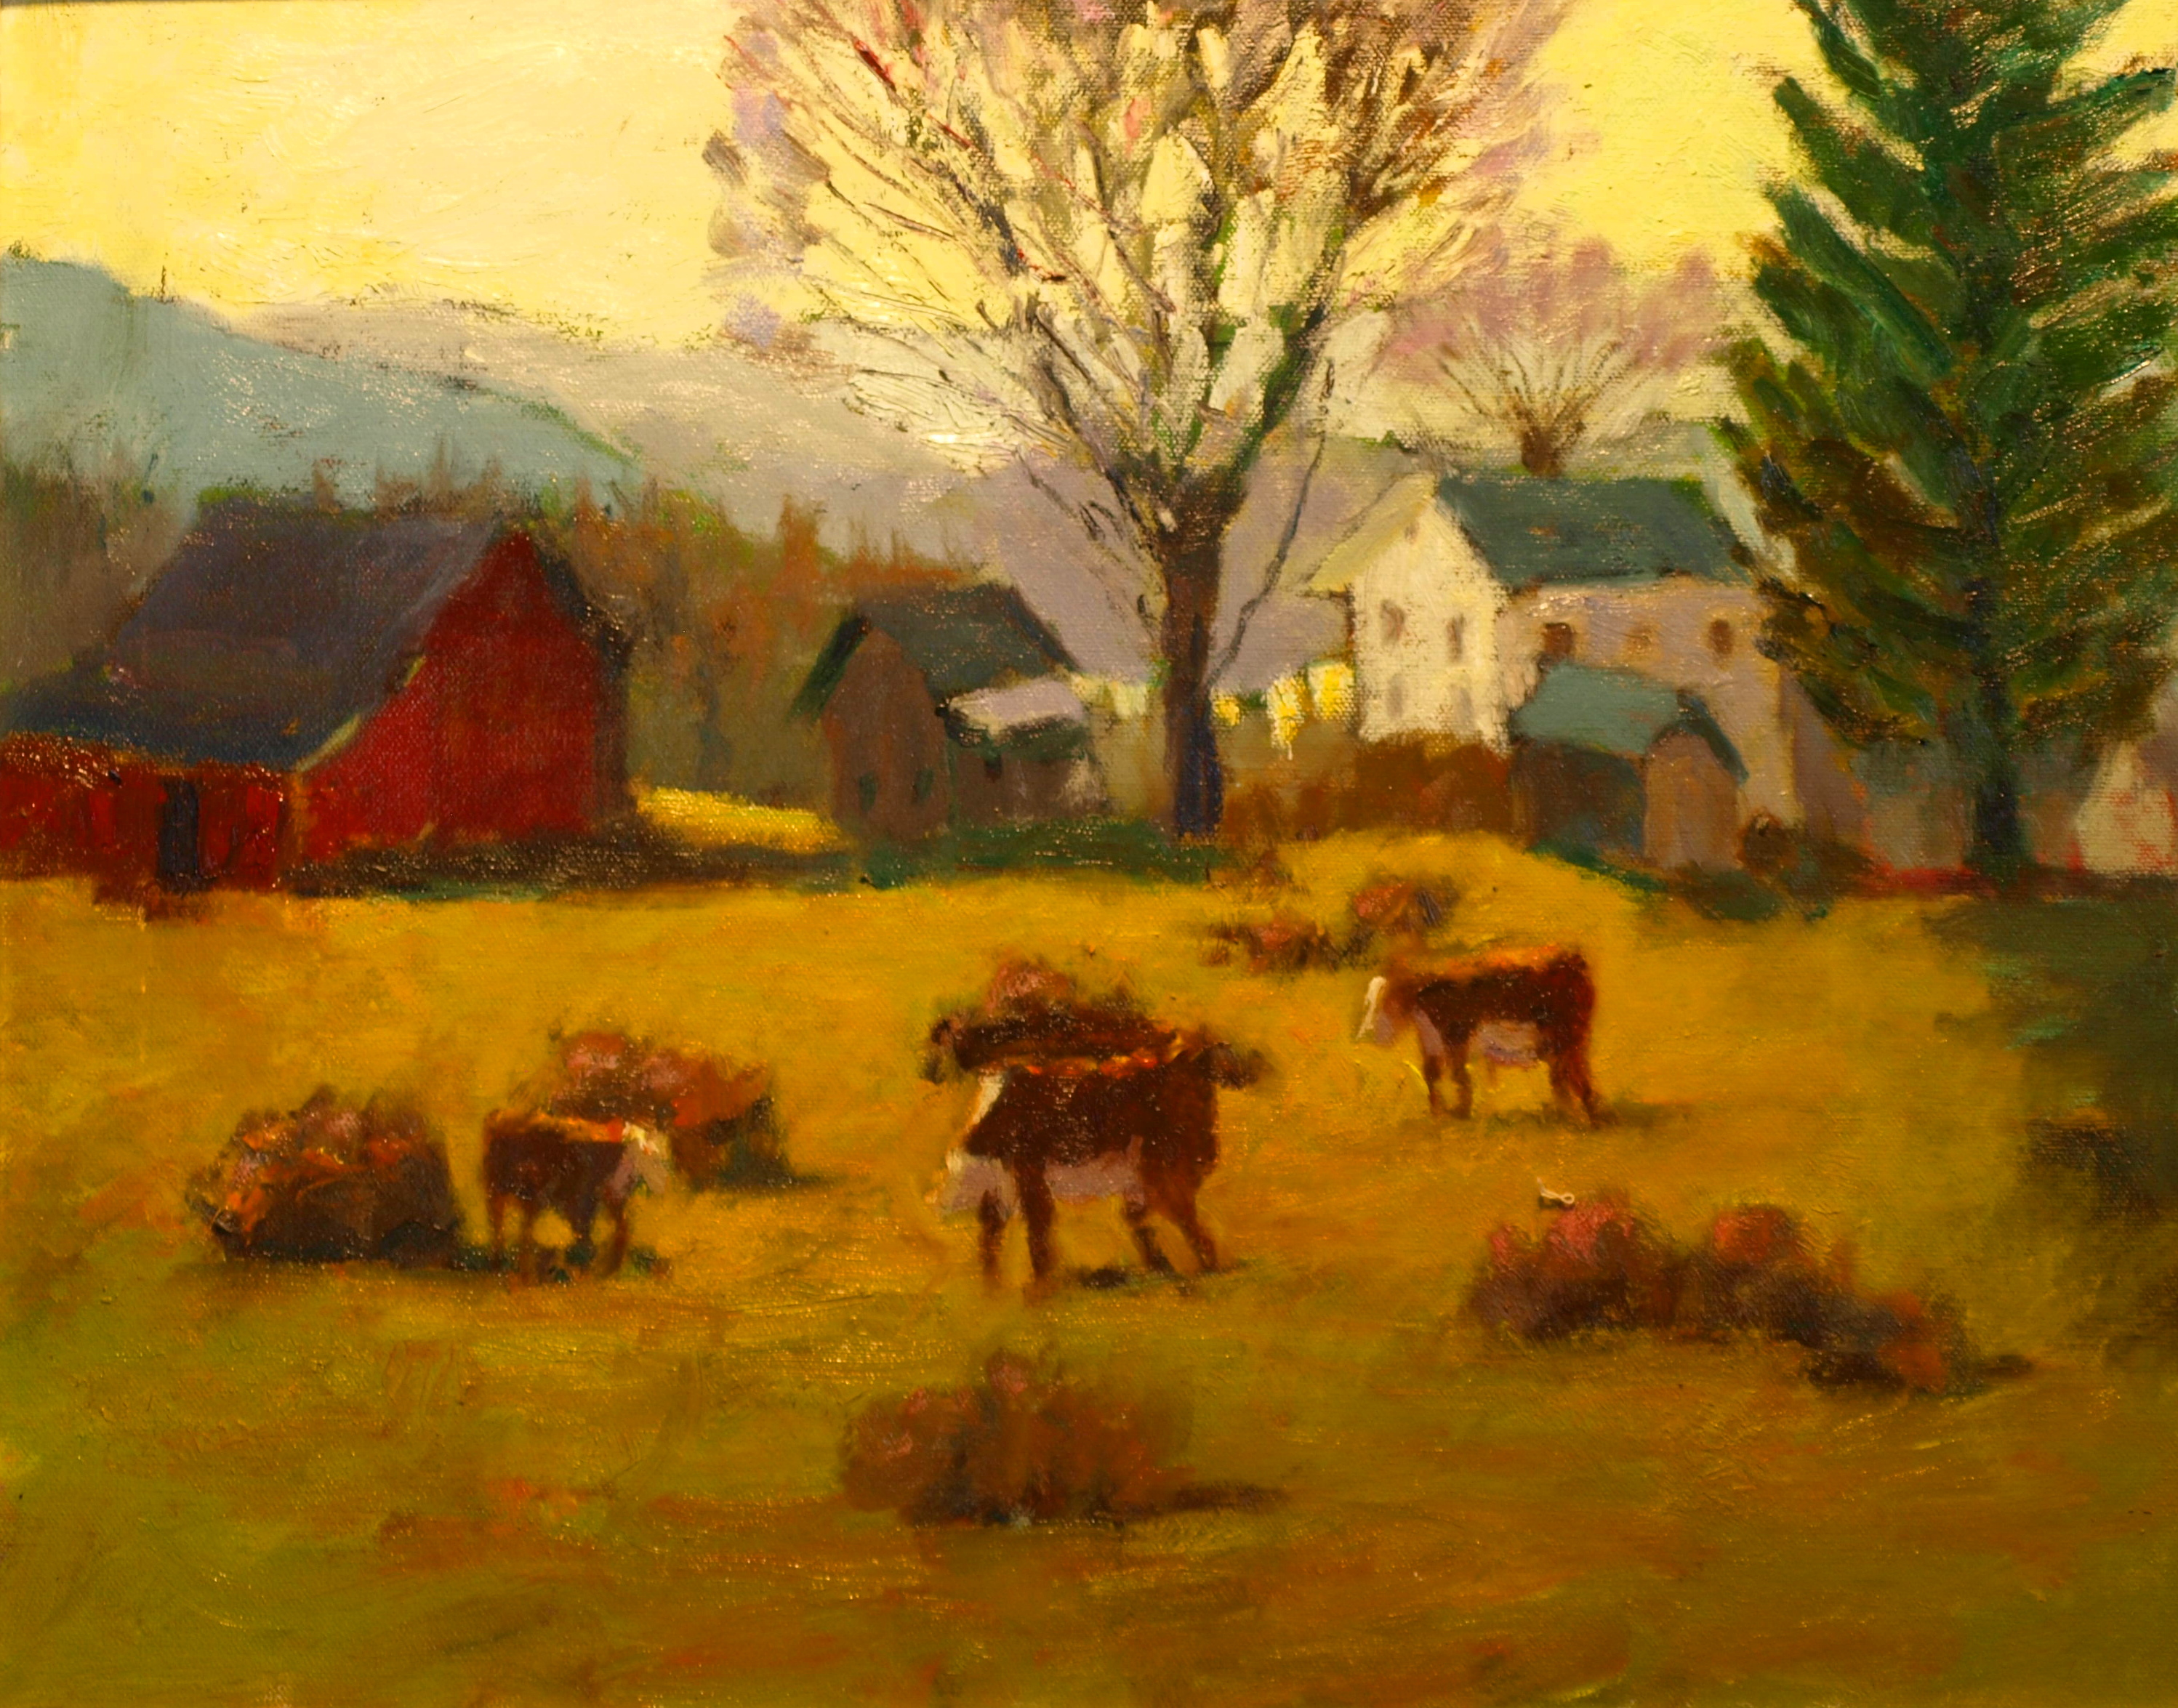 Washline, Oil on Canvas, 20 x 24 Inches, by Richard Stalter, $650